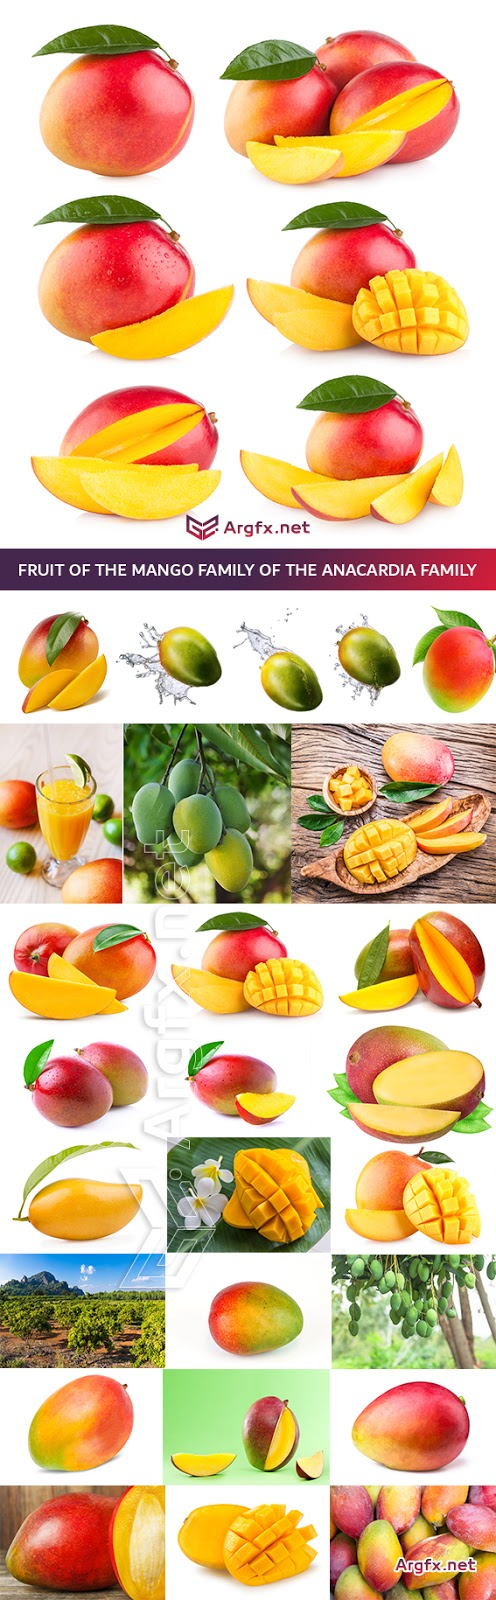 Fruit of the Mango family of the Anacardia family 25 HQ Jpg